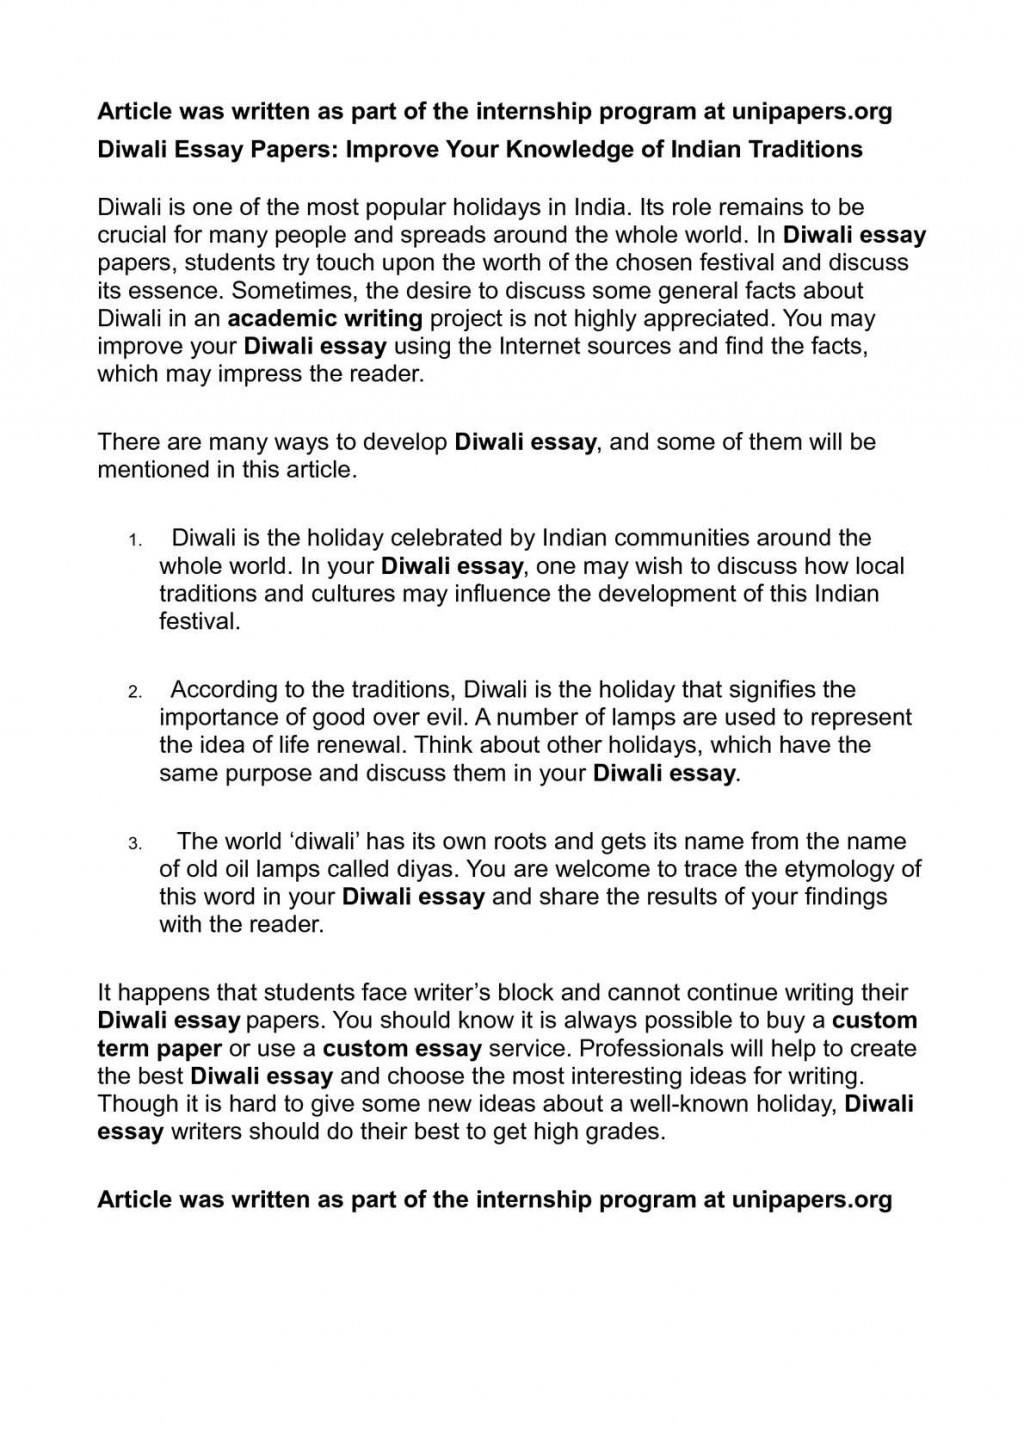 007 P1 Simple Essay On Diwali Striking For Class 1 My Favourite Festival Large